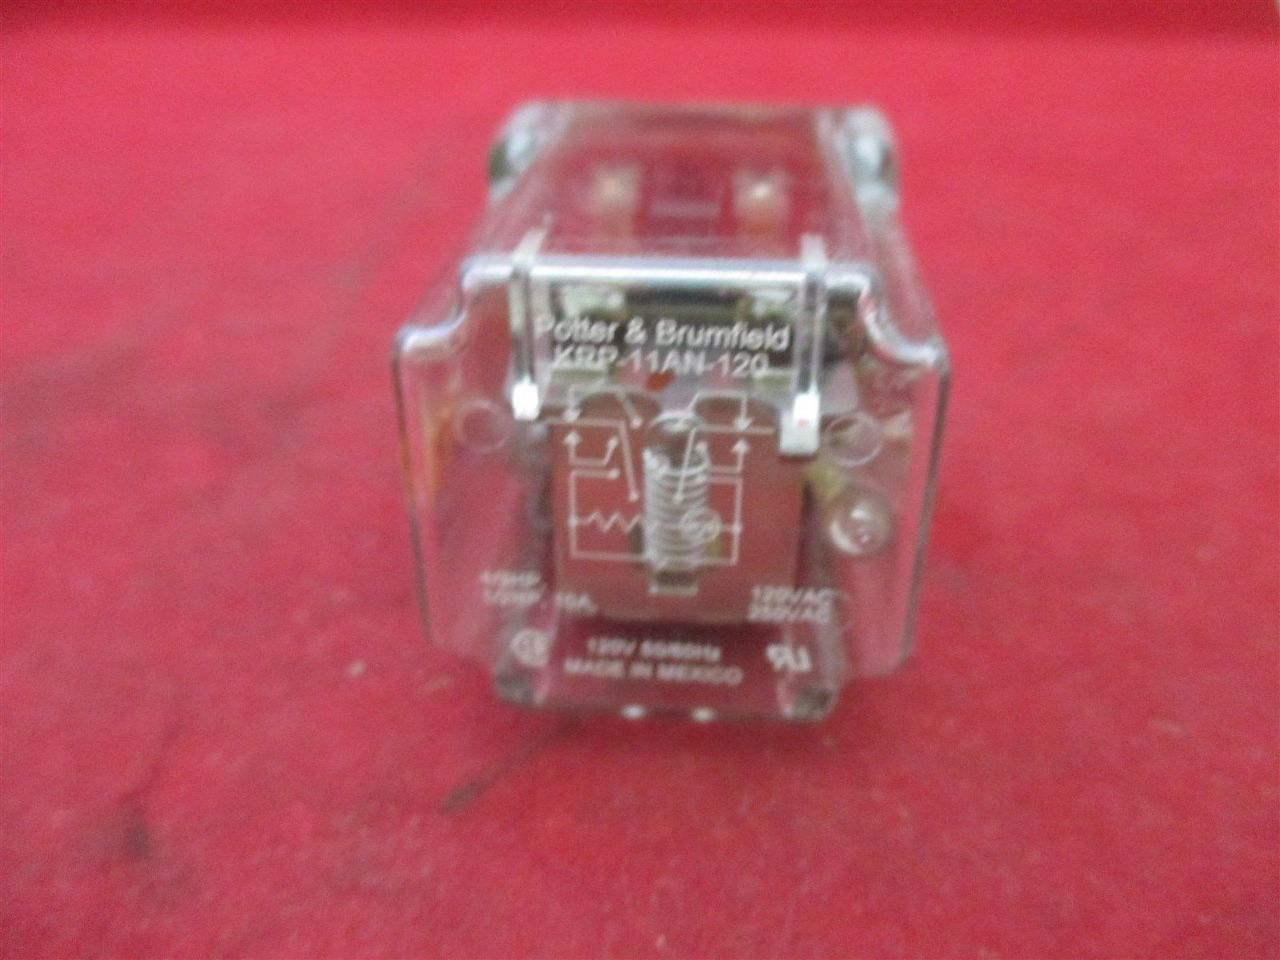 Potter Amp Brumfield Krp 11an 120 Relay Process Industrial